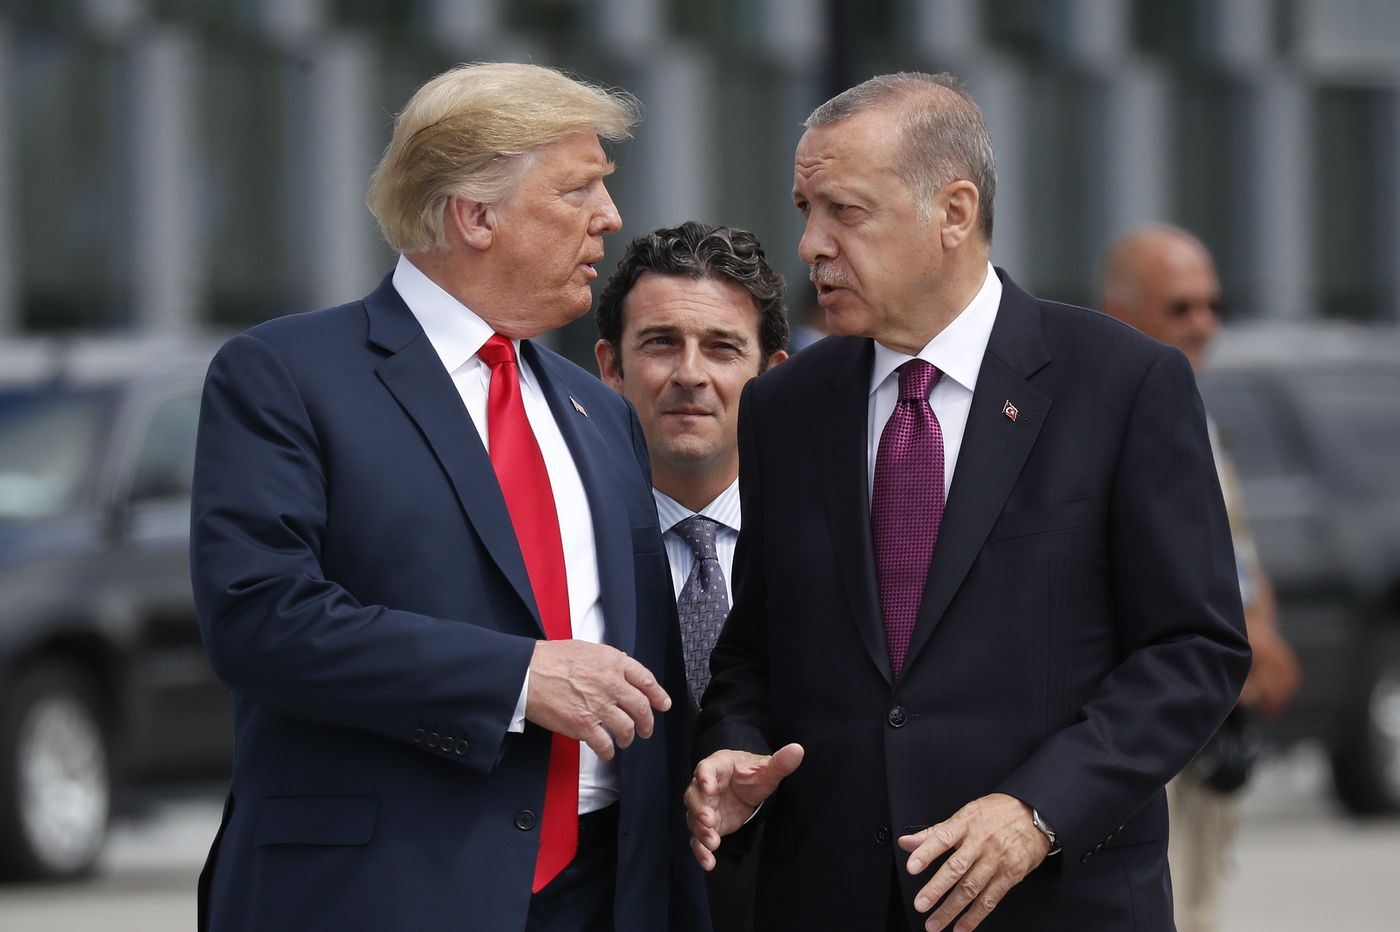 Turkey begins offensive in Syria after U.S. stands aside